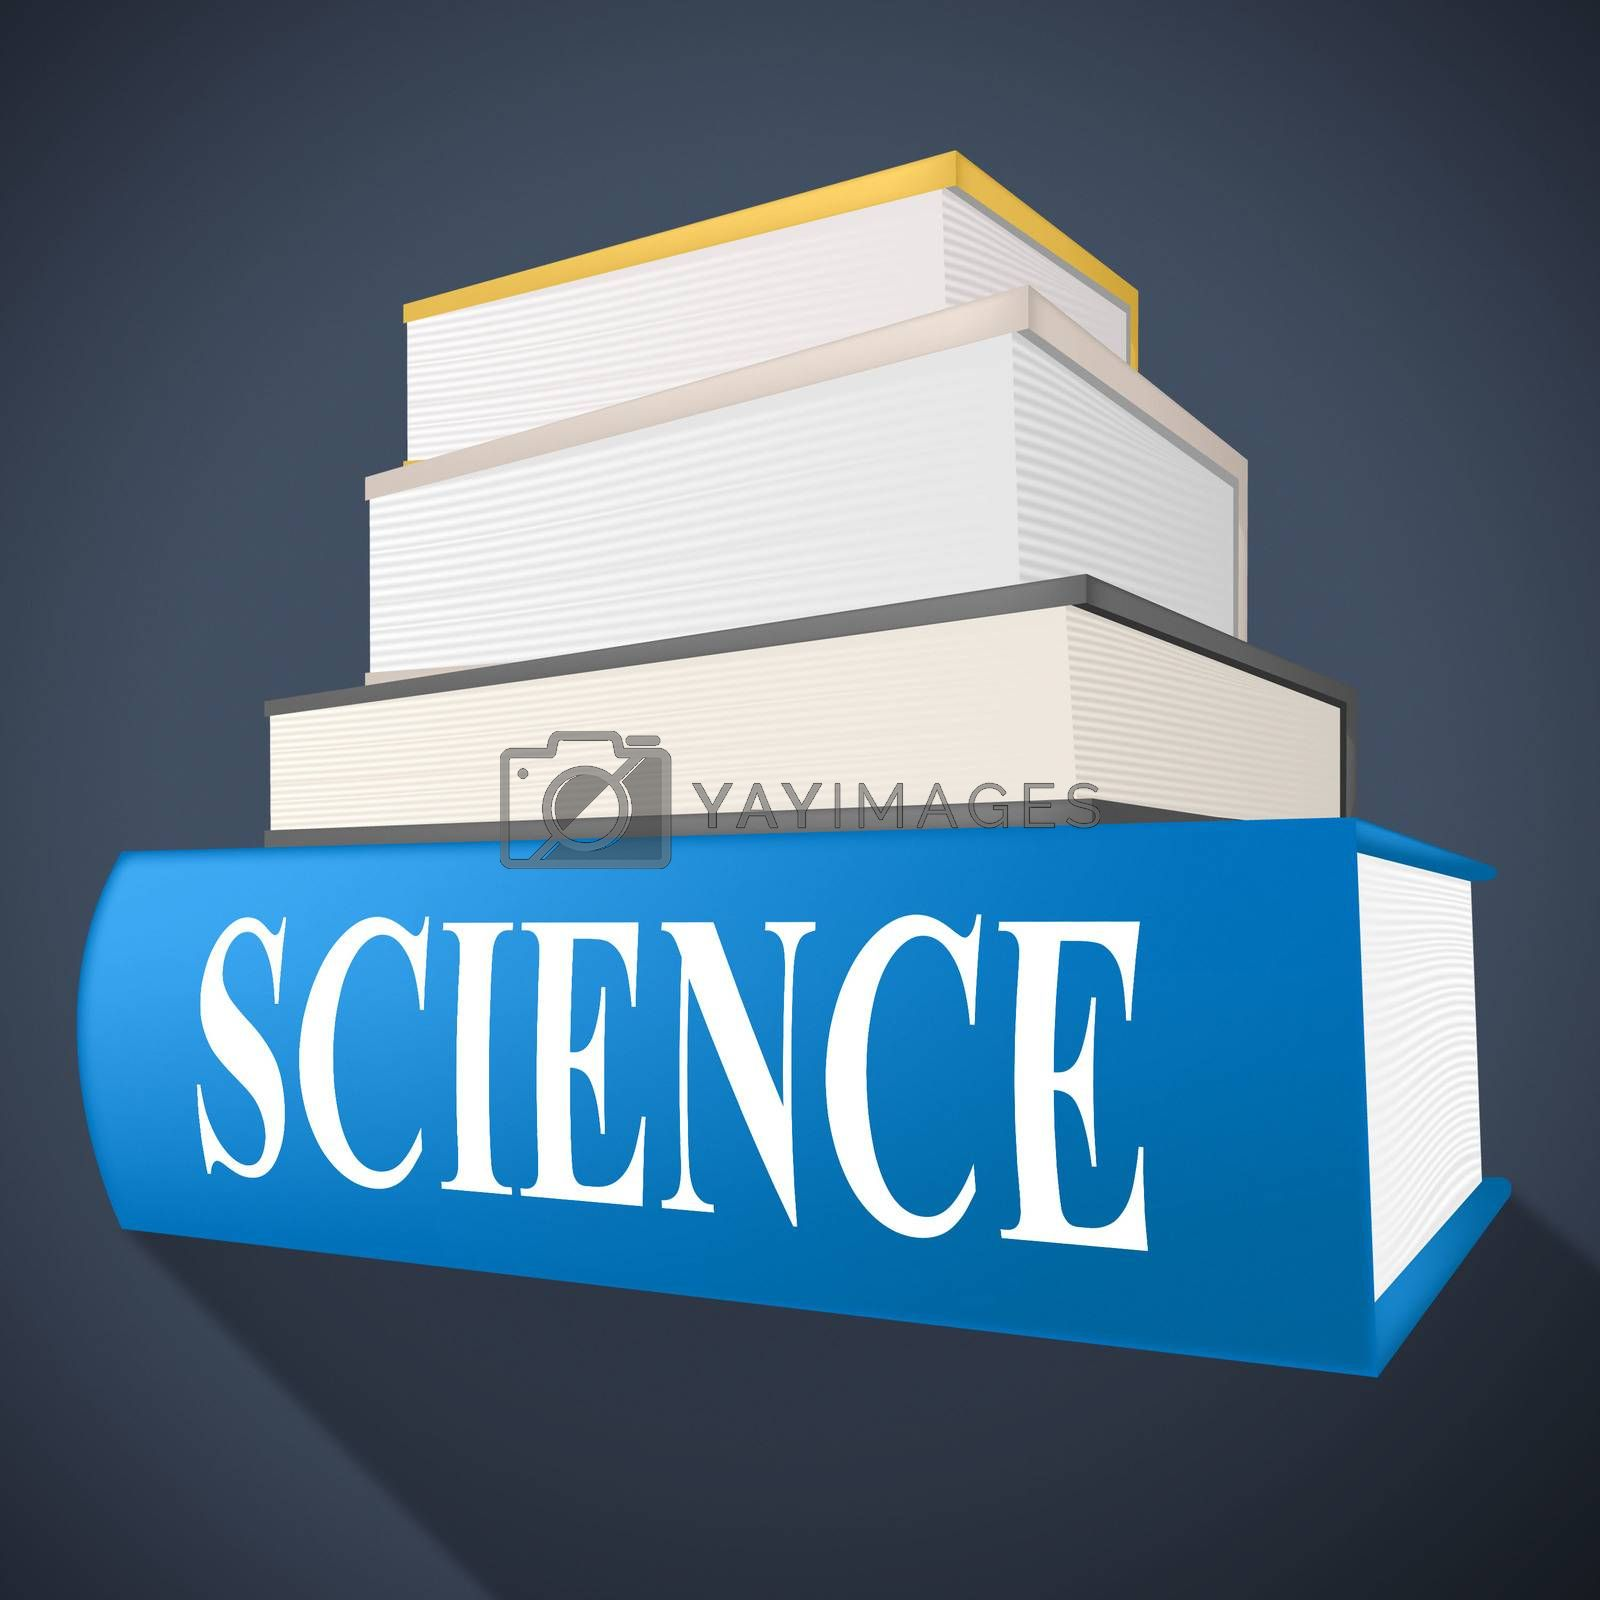 Science Book Means Chemistry Formulas And Chemist by stuartmiles